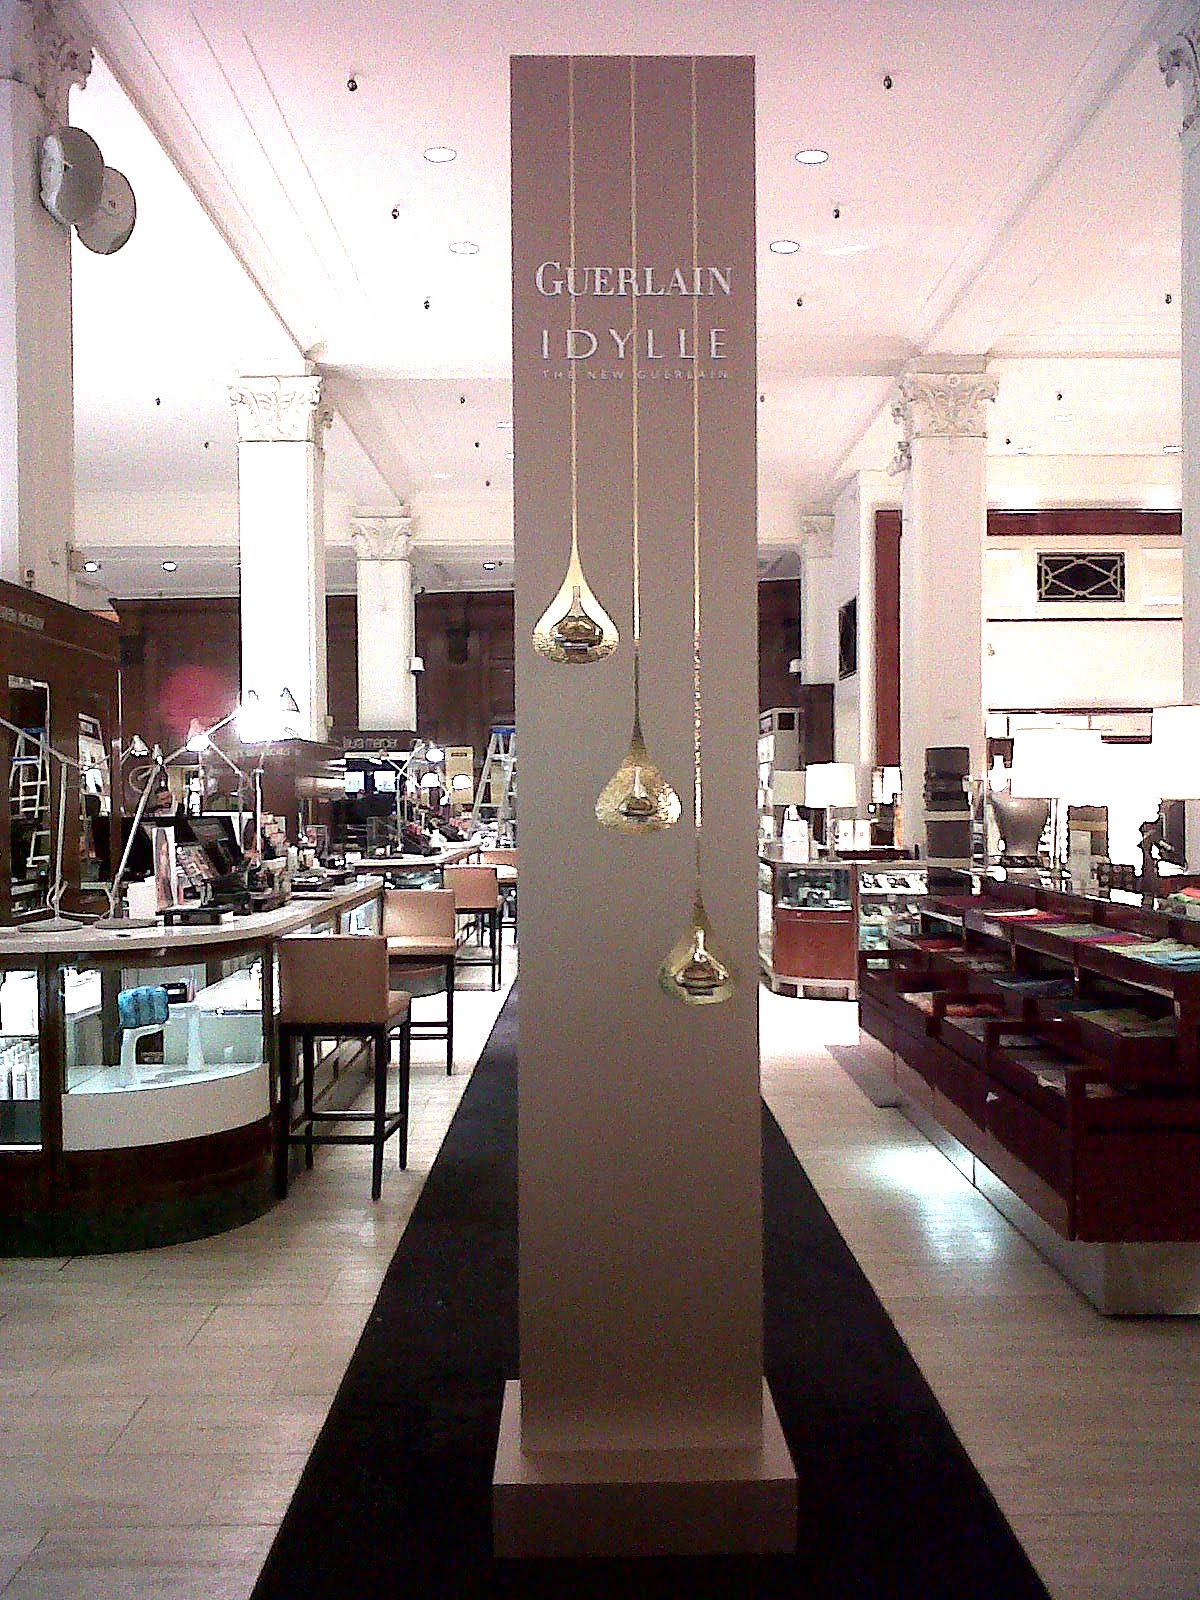 Guerlain beauty tower produced for Saks 5th Avenue.